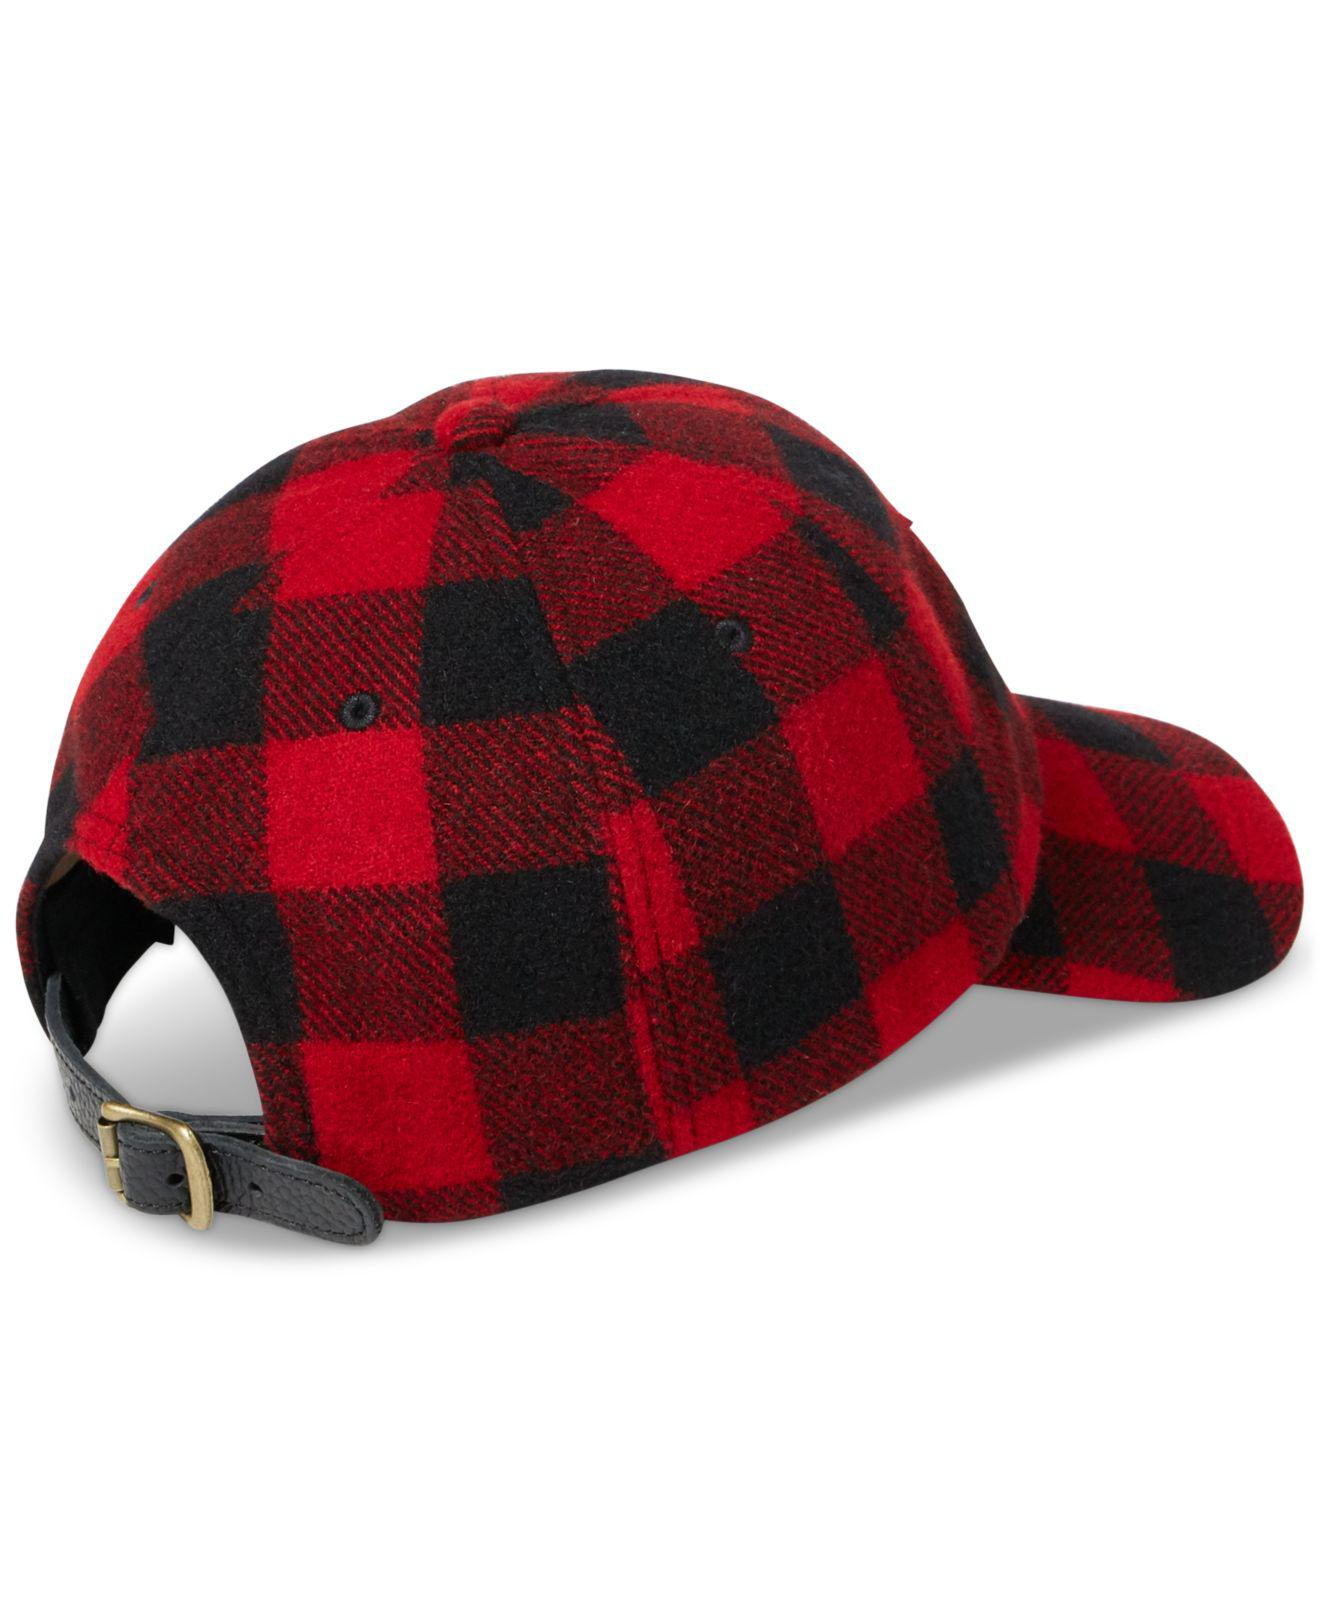 724c4d62128 Lyst - Polo Ralph Lauren Buffalo Check Wool-blend Cap in Red for Men